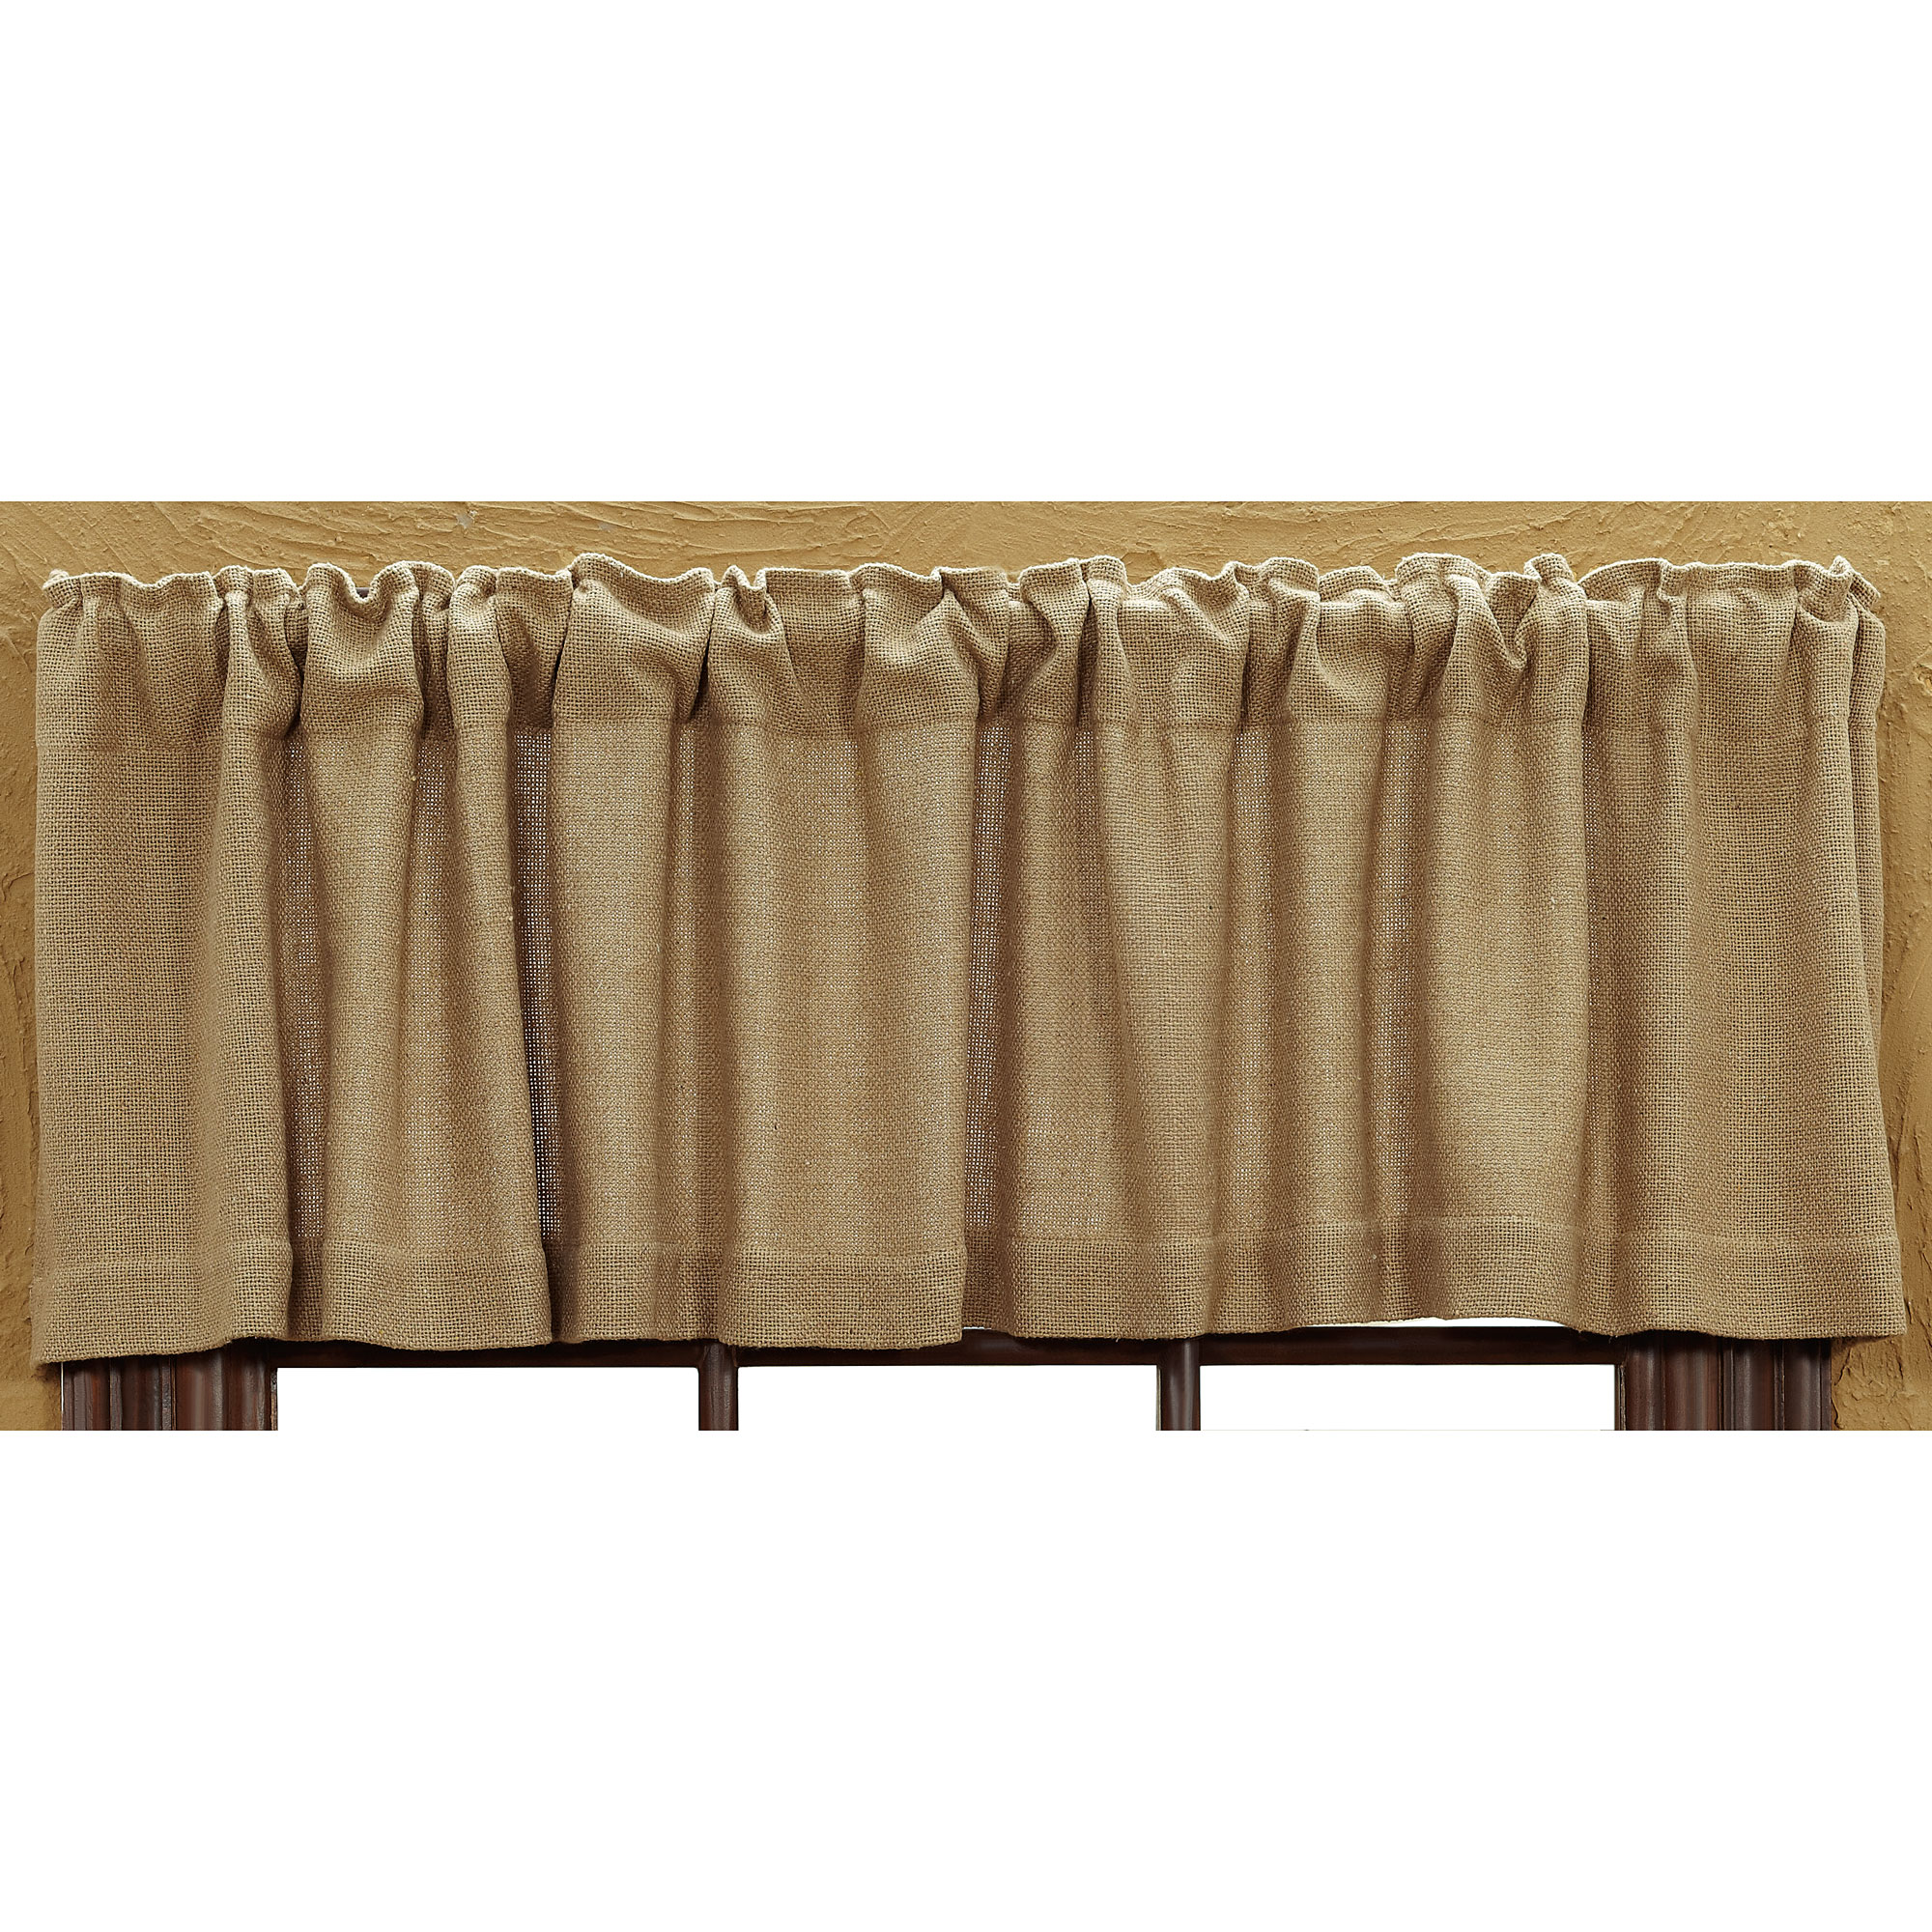 Burlap Valances For Windows : Burlap natural valance ebay